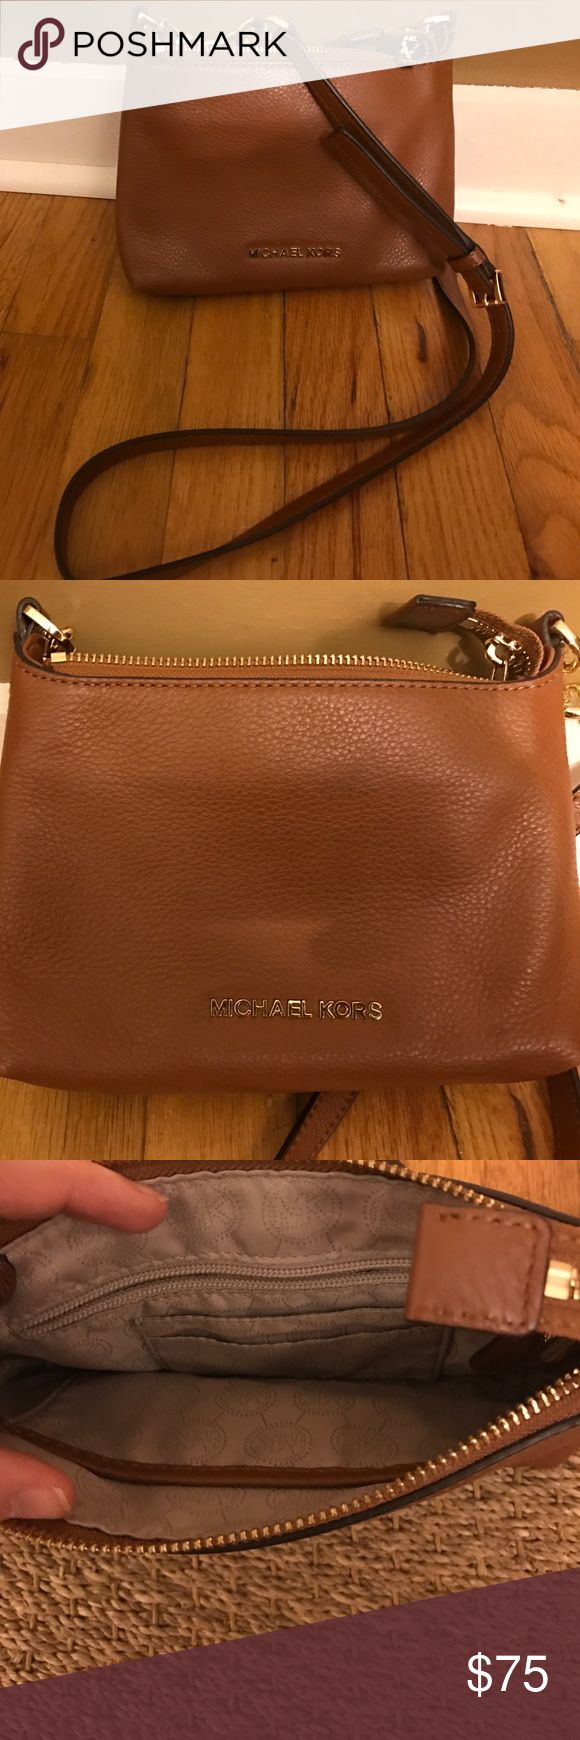 Michael Kors hipster purse All leather beautiful tan Michael Kors purse. This bag is great for on the go! It's in excellent almost new condition. Michael Kors Bags Mini Bags